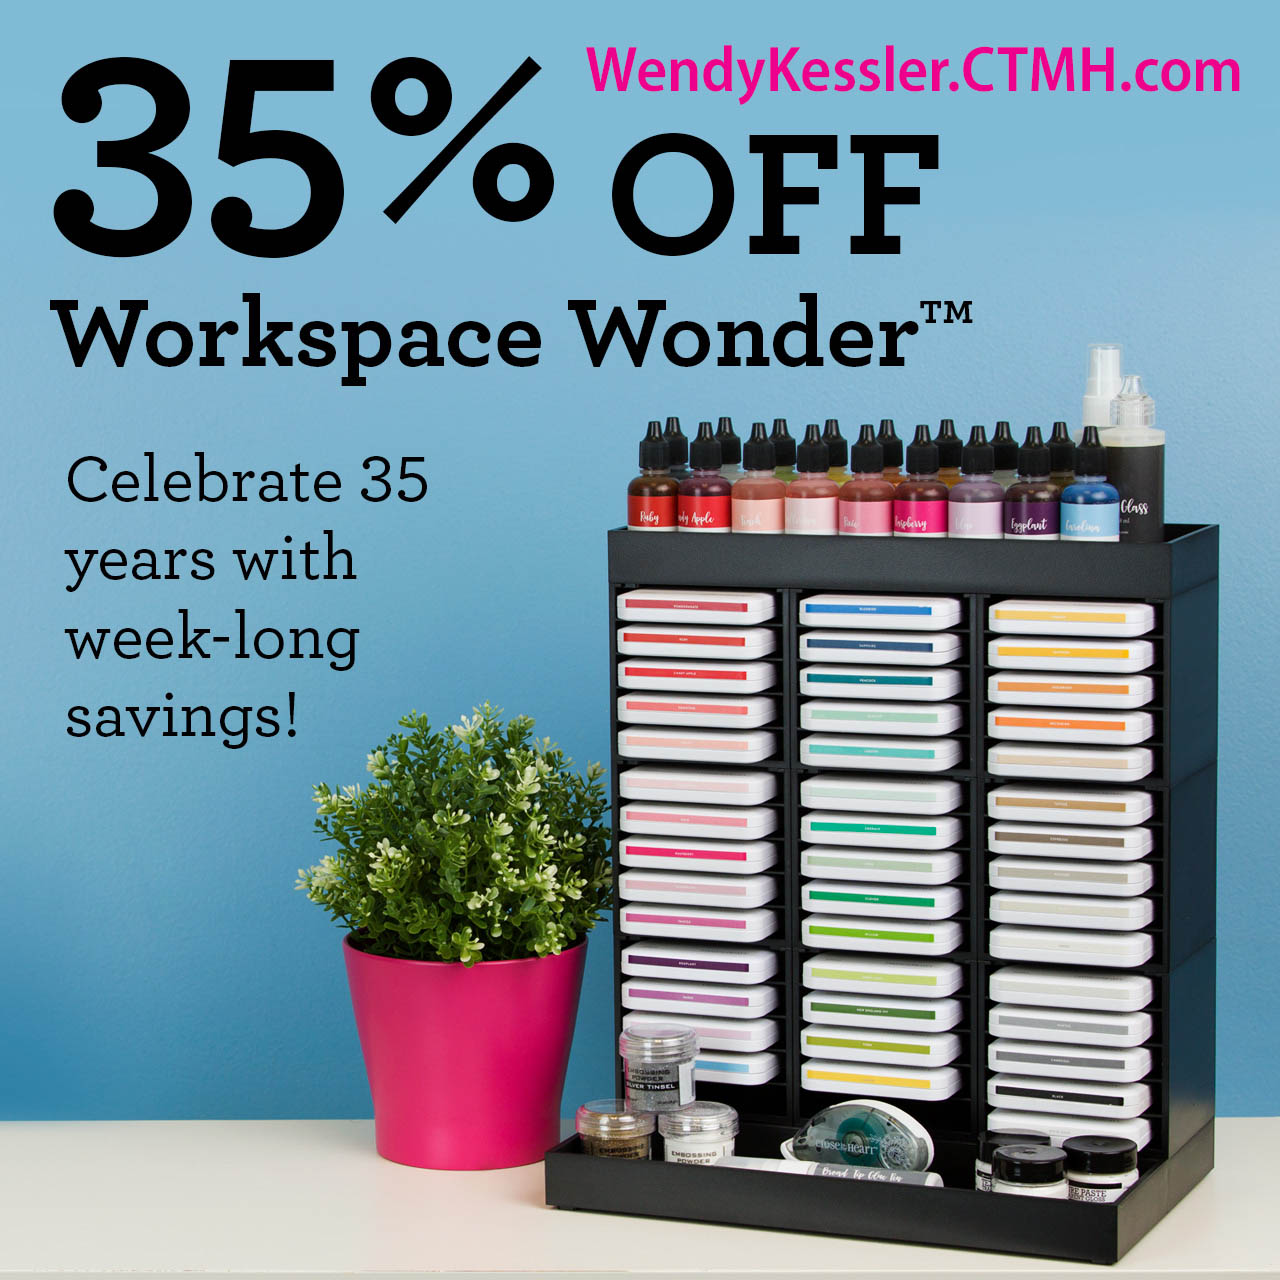 Workspace Wonder Organization Sale!